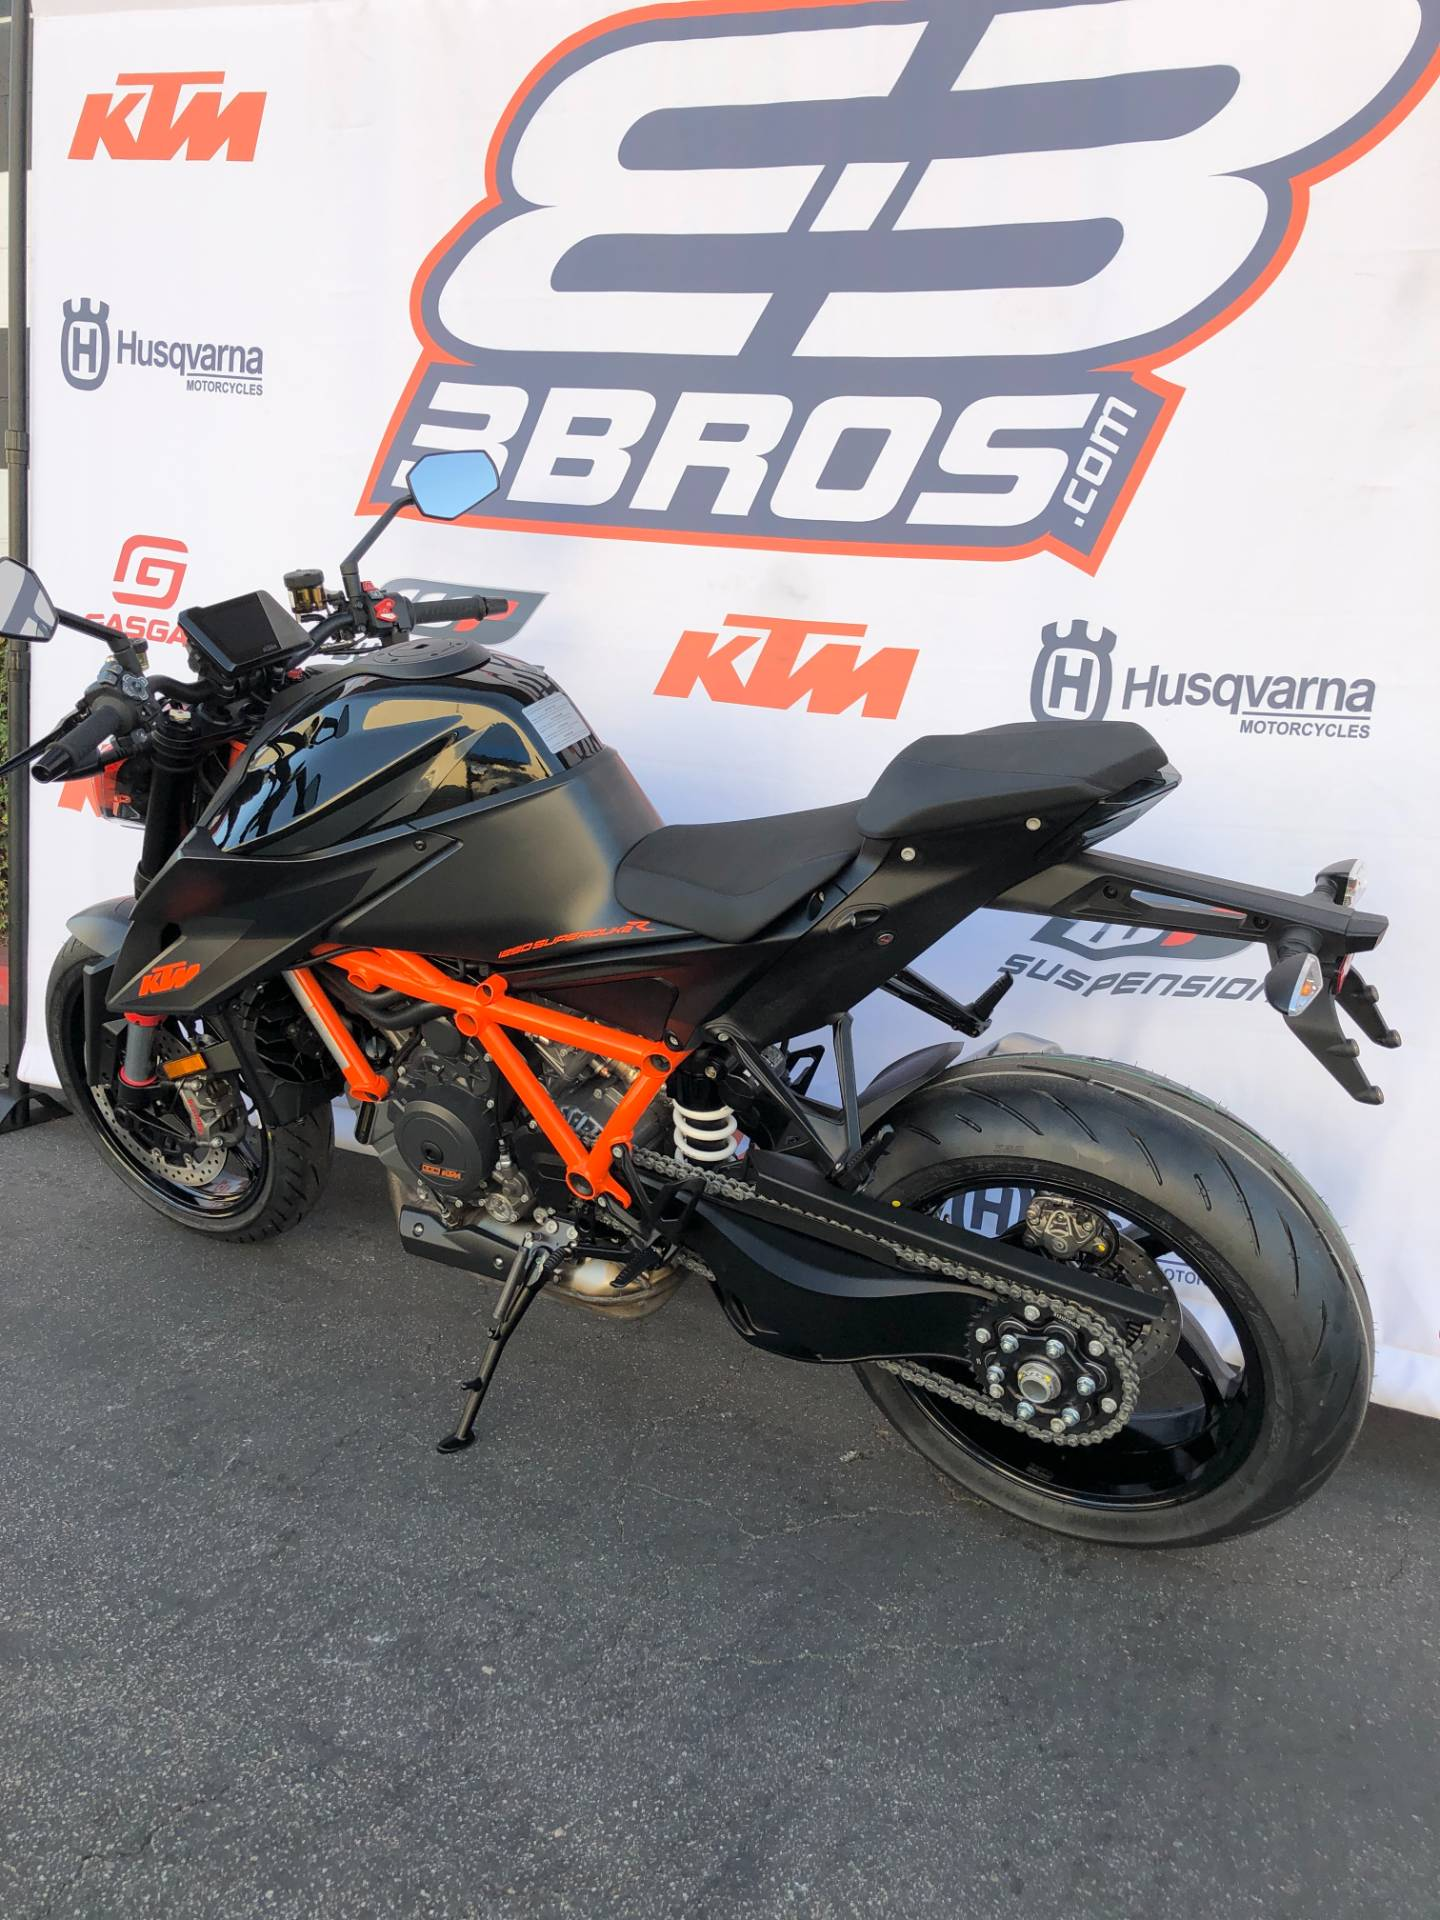 2021 KTM 1290 Super Duke R in Costa Mesa, California - Photo 8